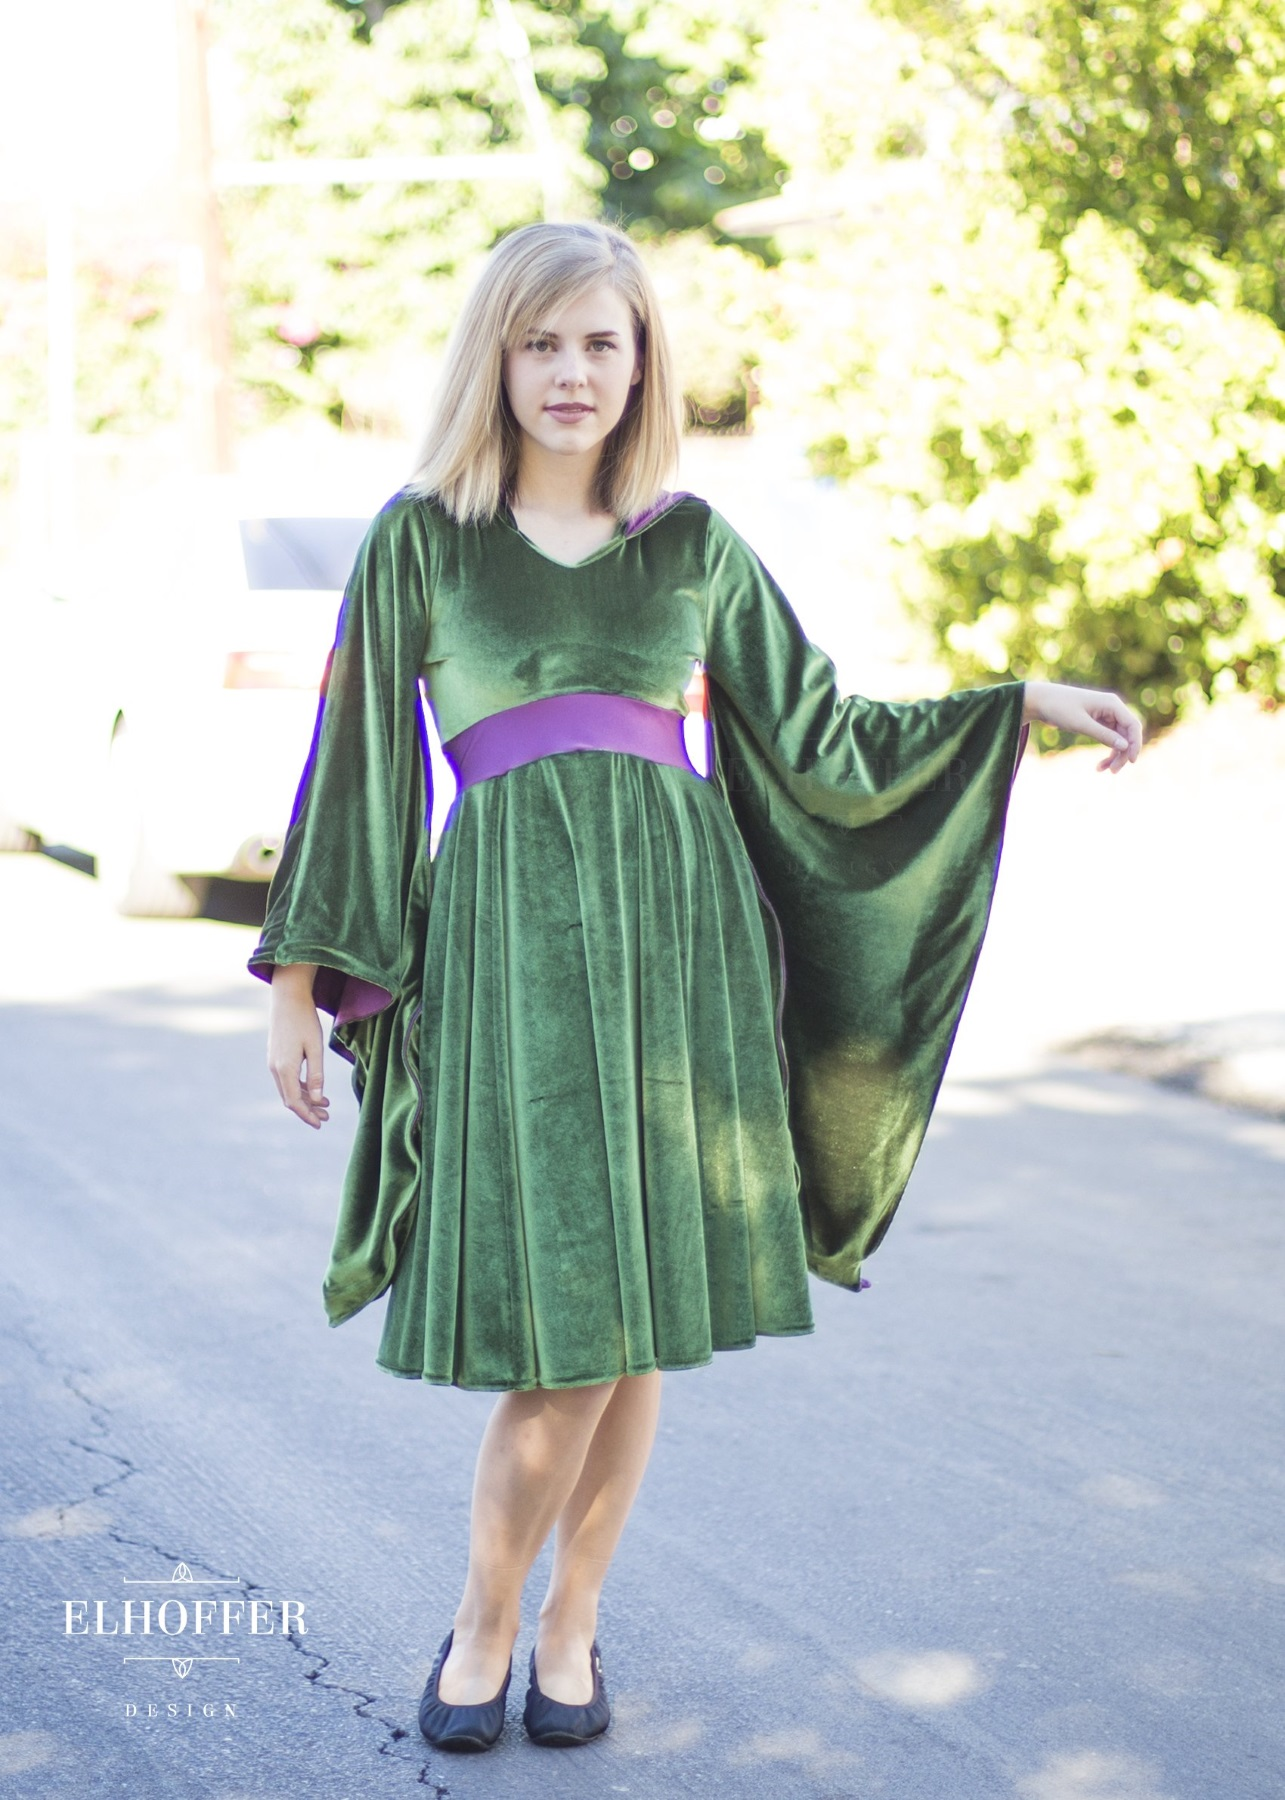 Star Wars Padme Amidala Velvet Dress by Elhoffer Design